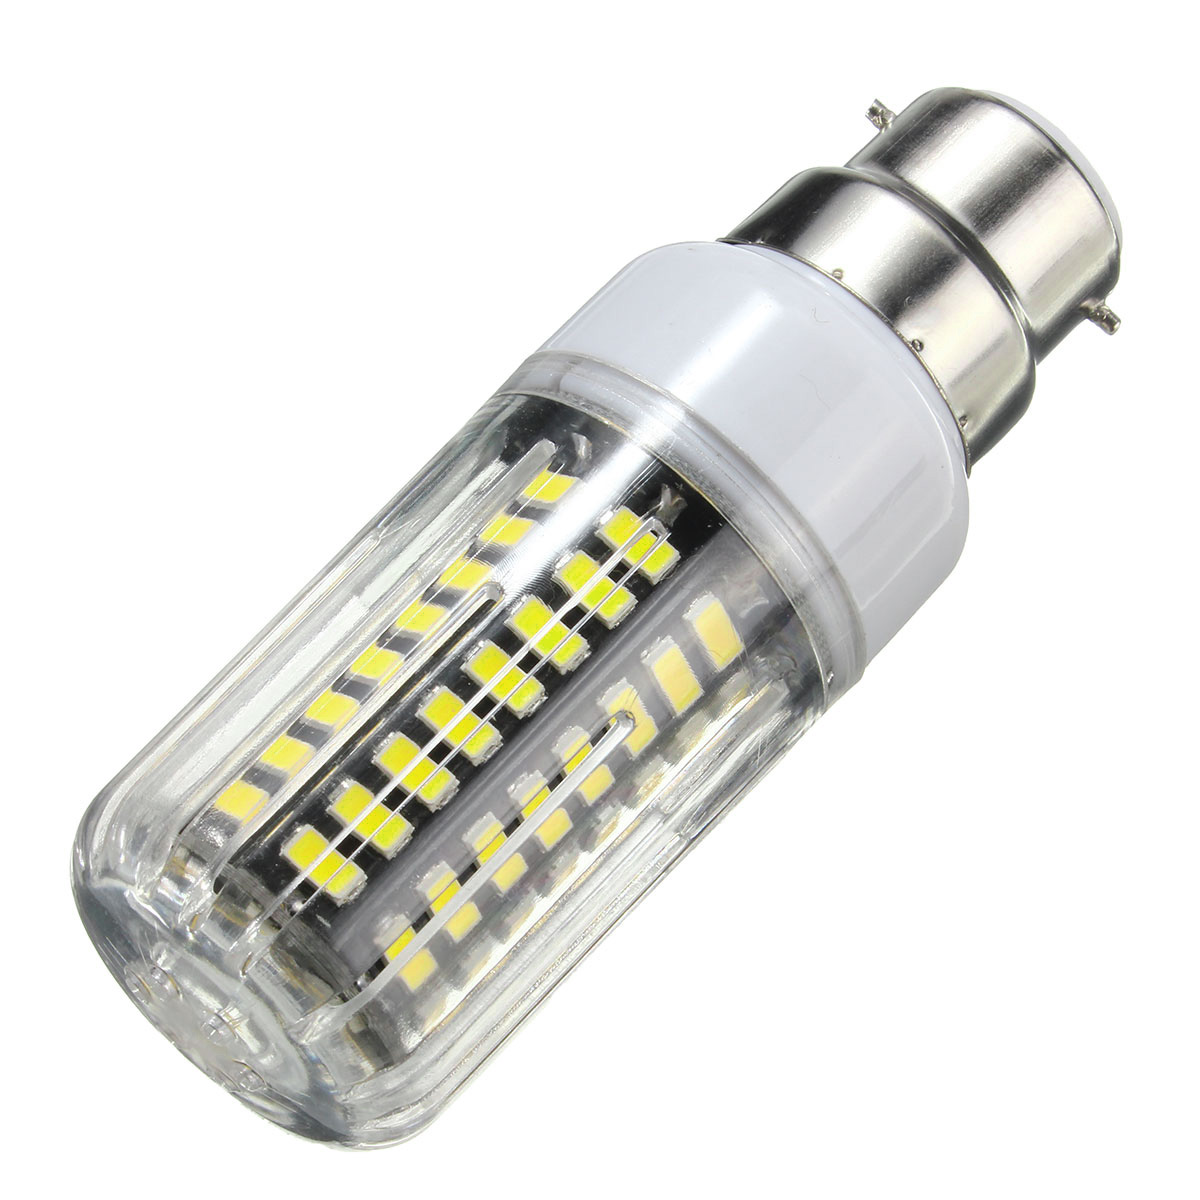 E27 E14 E12 B22 G9 GU10 7W 74 SMD 5730 LED Warm White White Cover Corn Bulb AC 220V